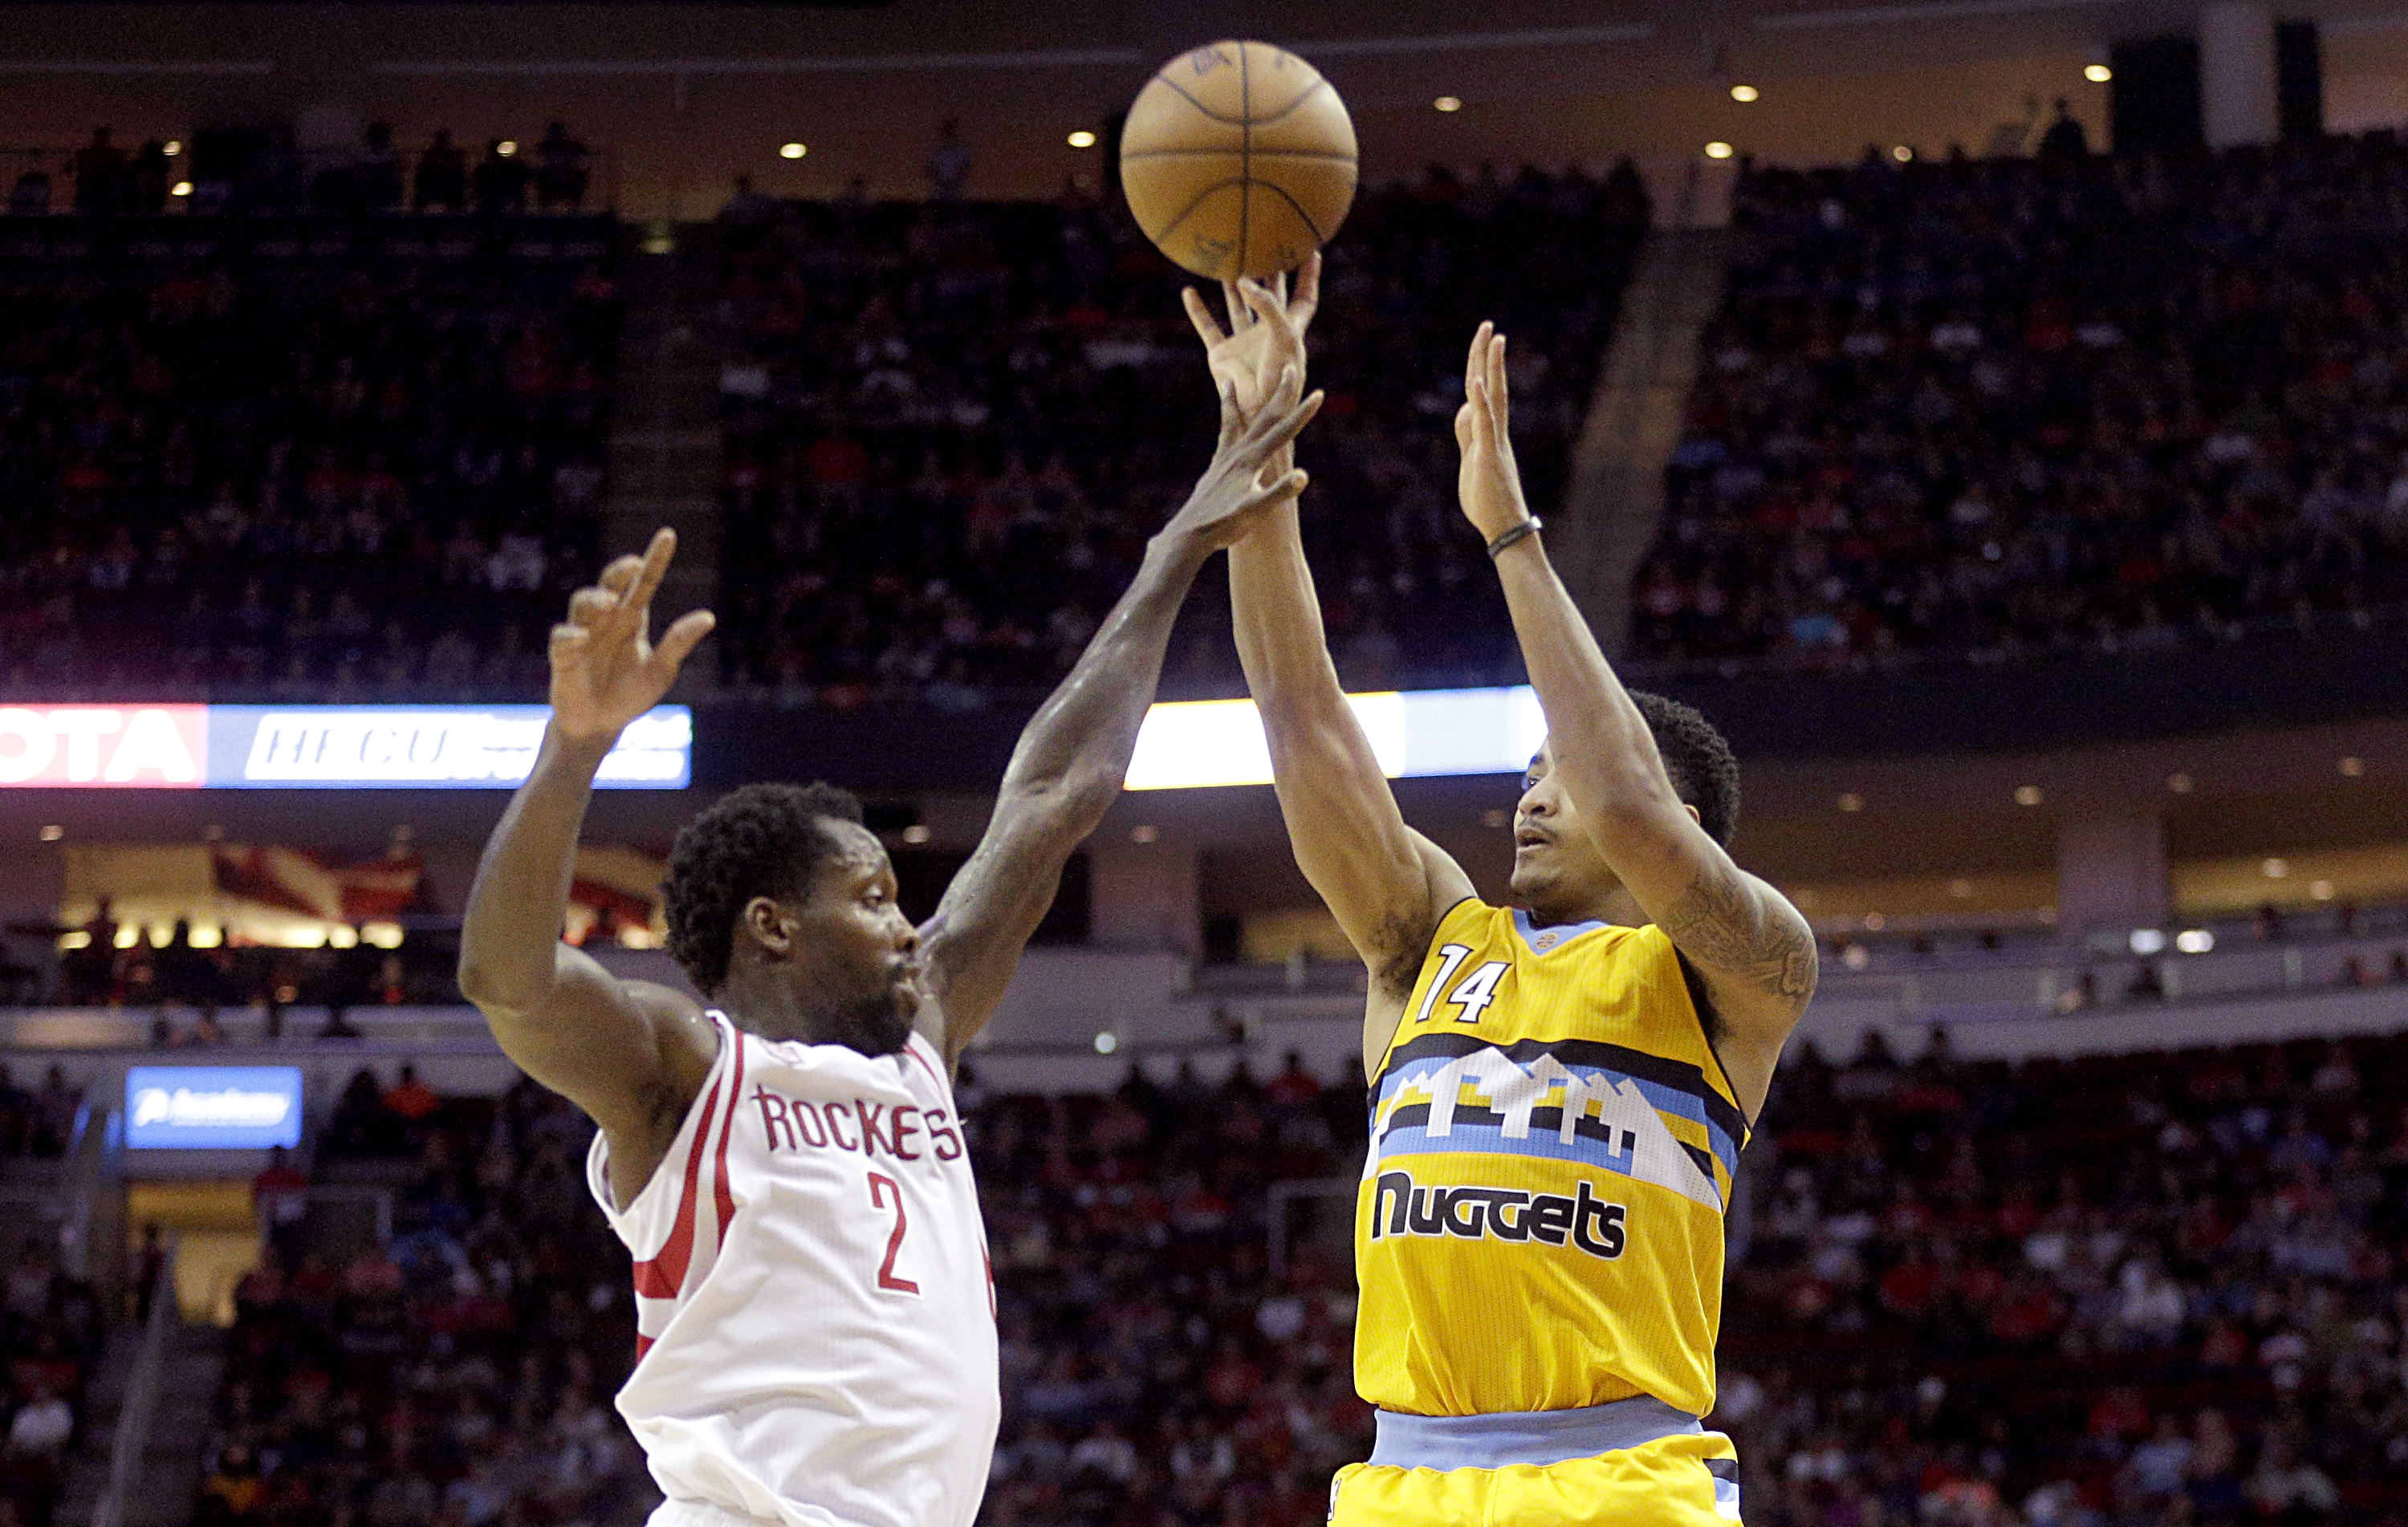 9961349-nba-denver-nuggets-at-houston-rockets